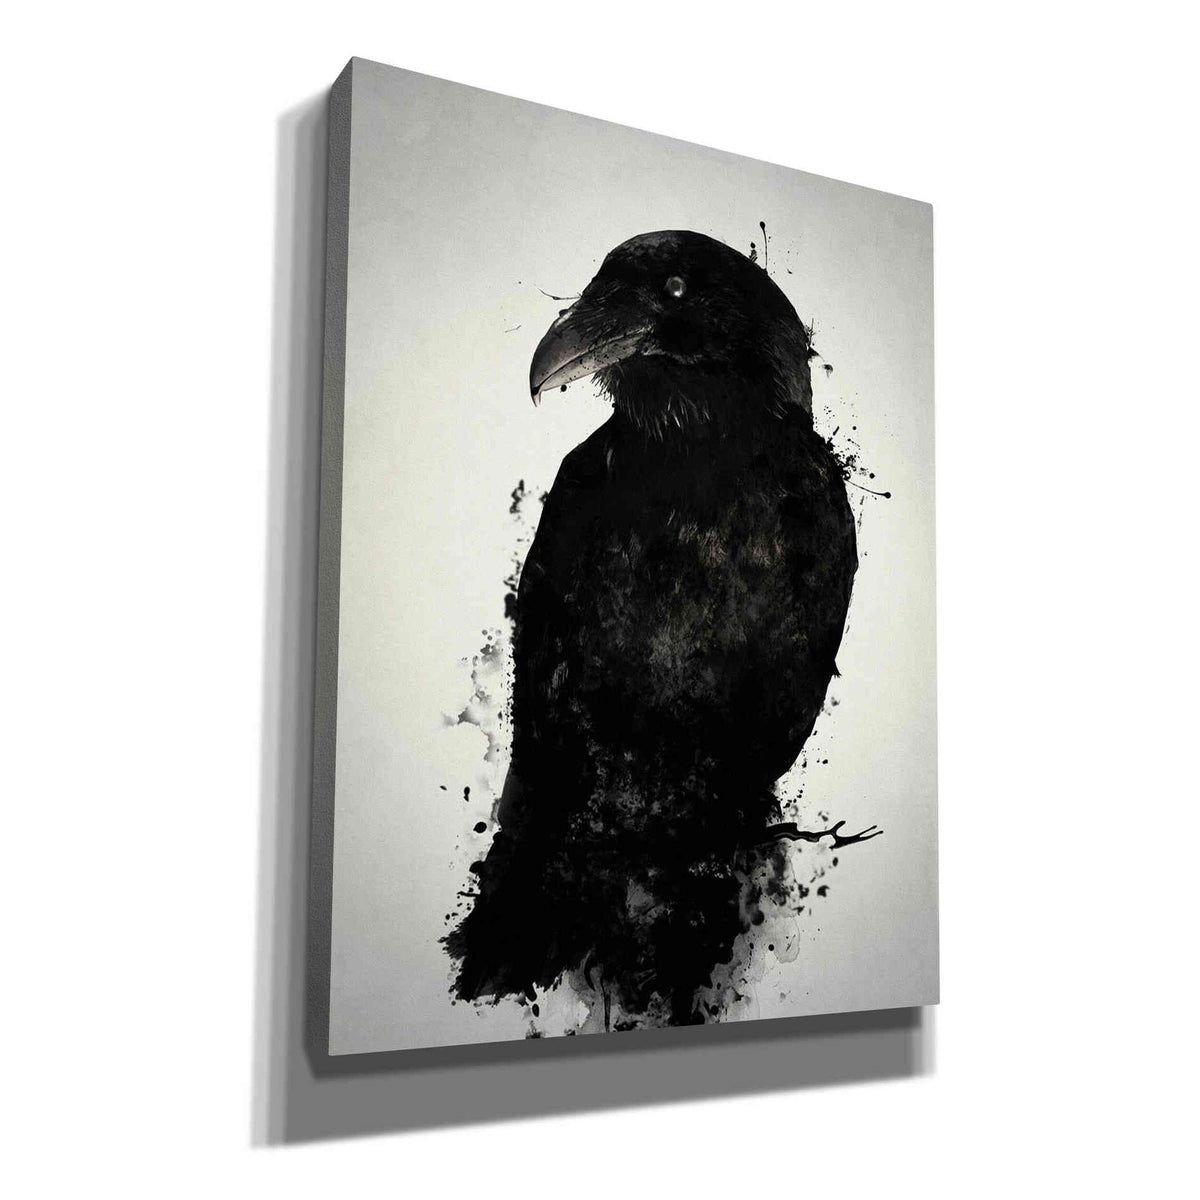 Cortesi Home 'The Raven' by Nicklas Gustafsson, Canvas Wall Art